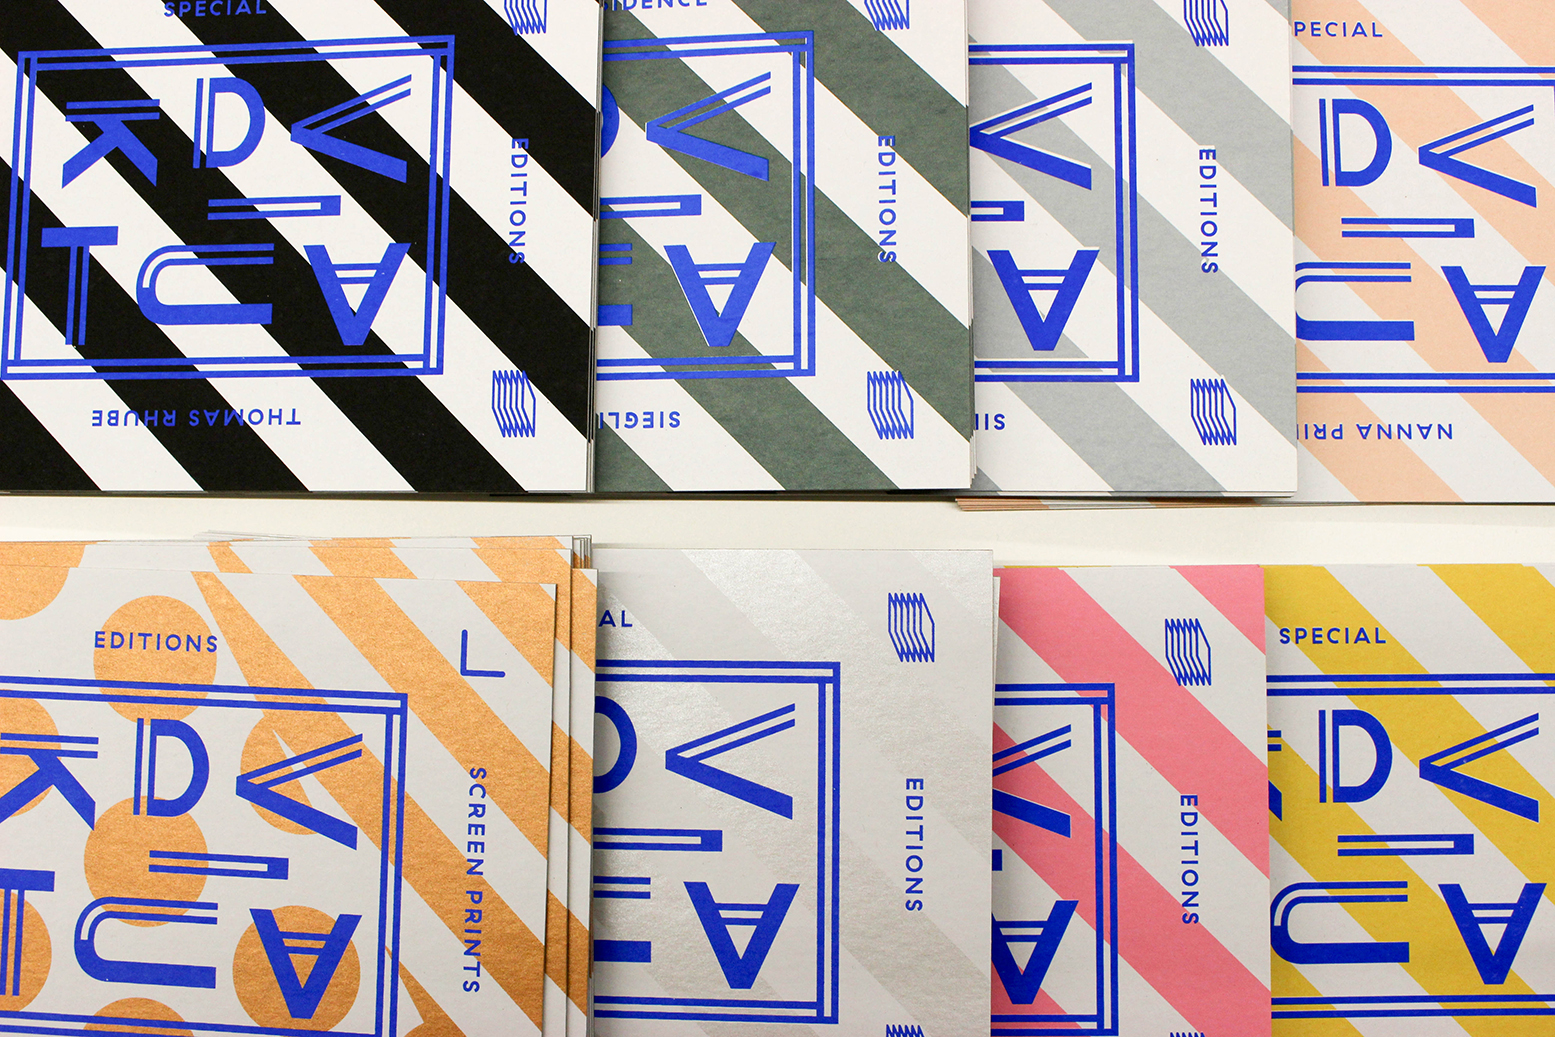 Colorful screen prints by Viaduct Screen Prints Vienna